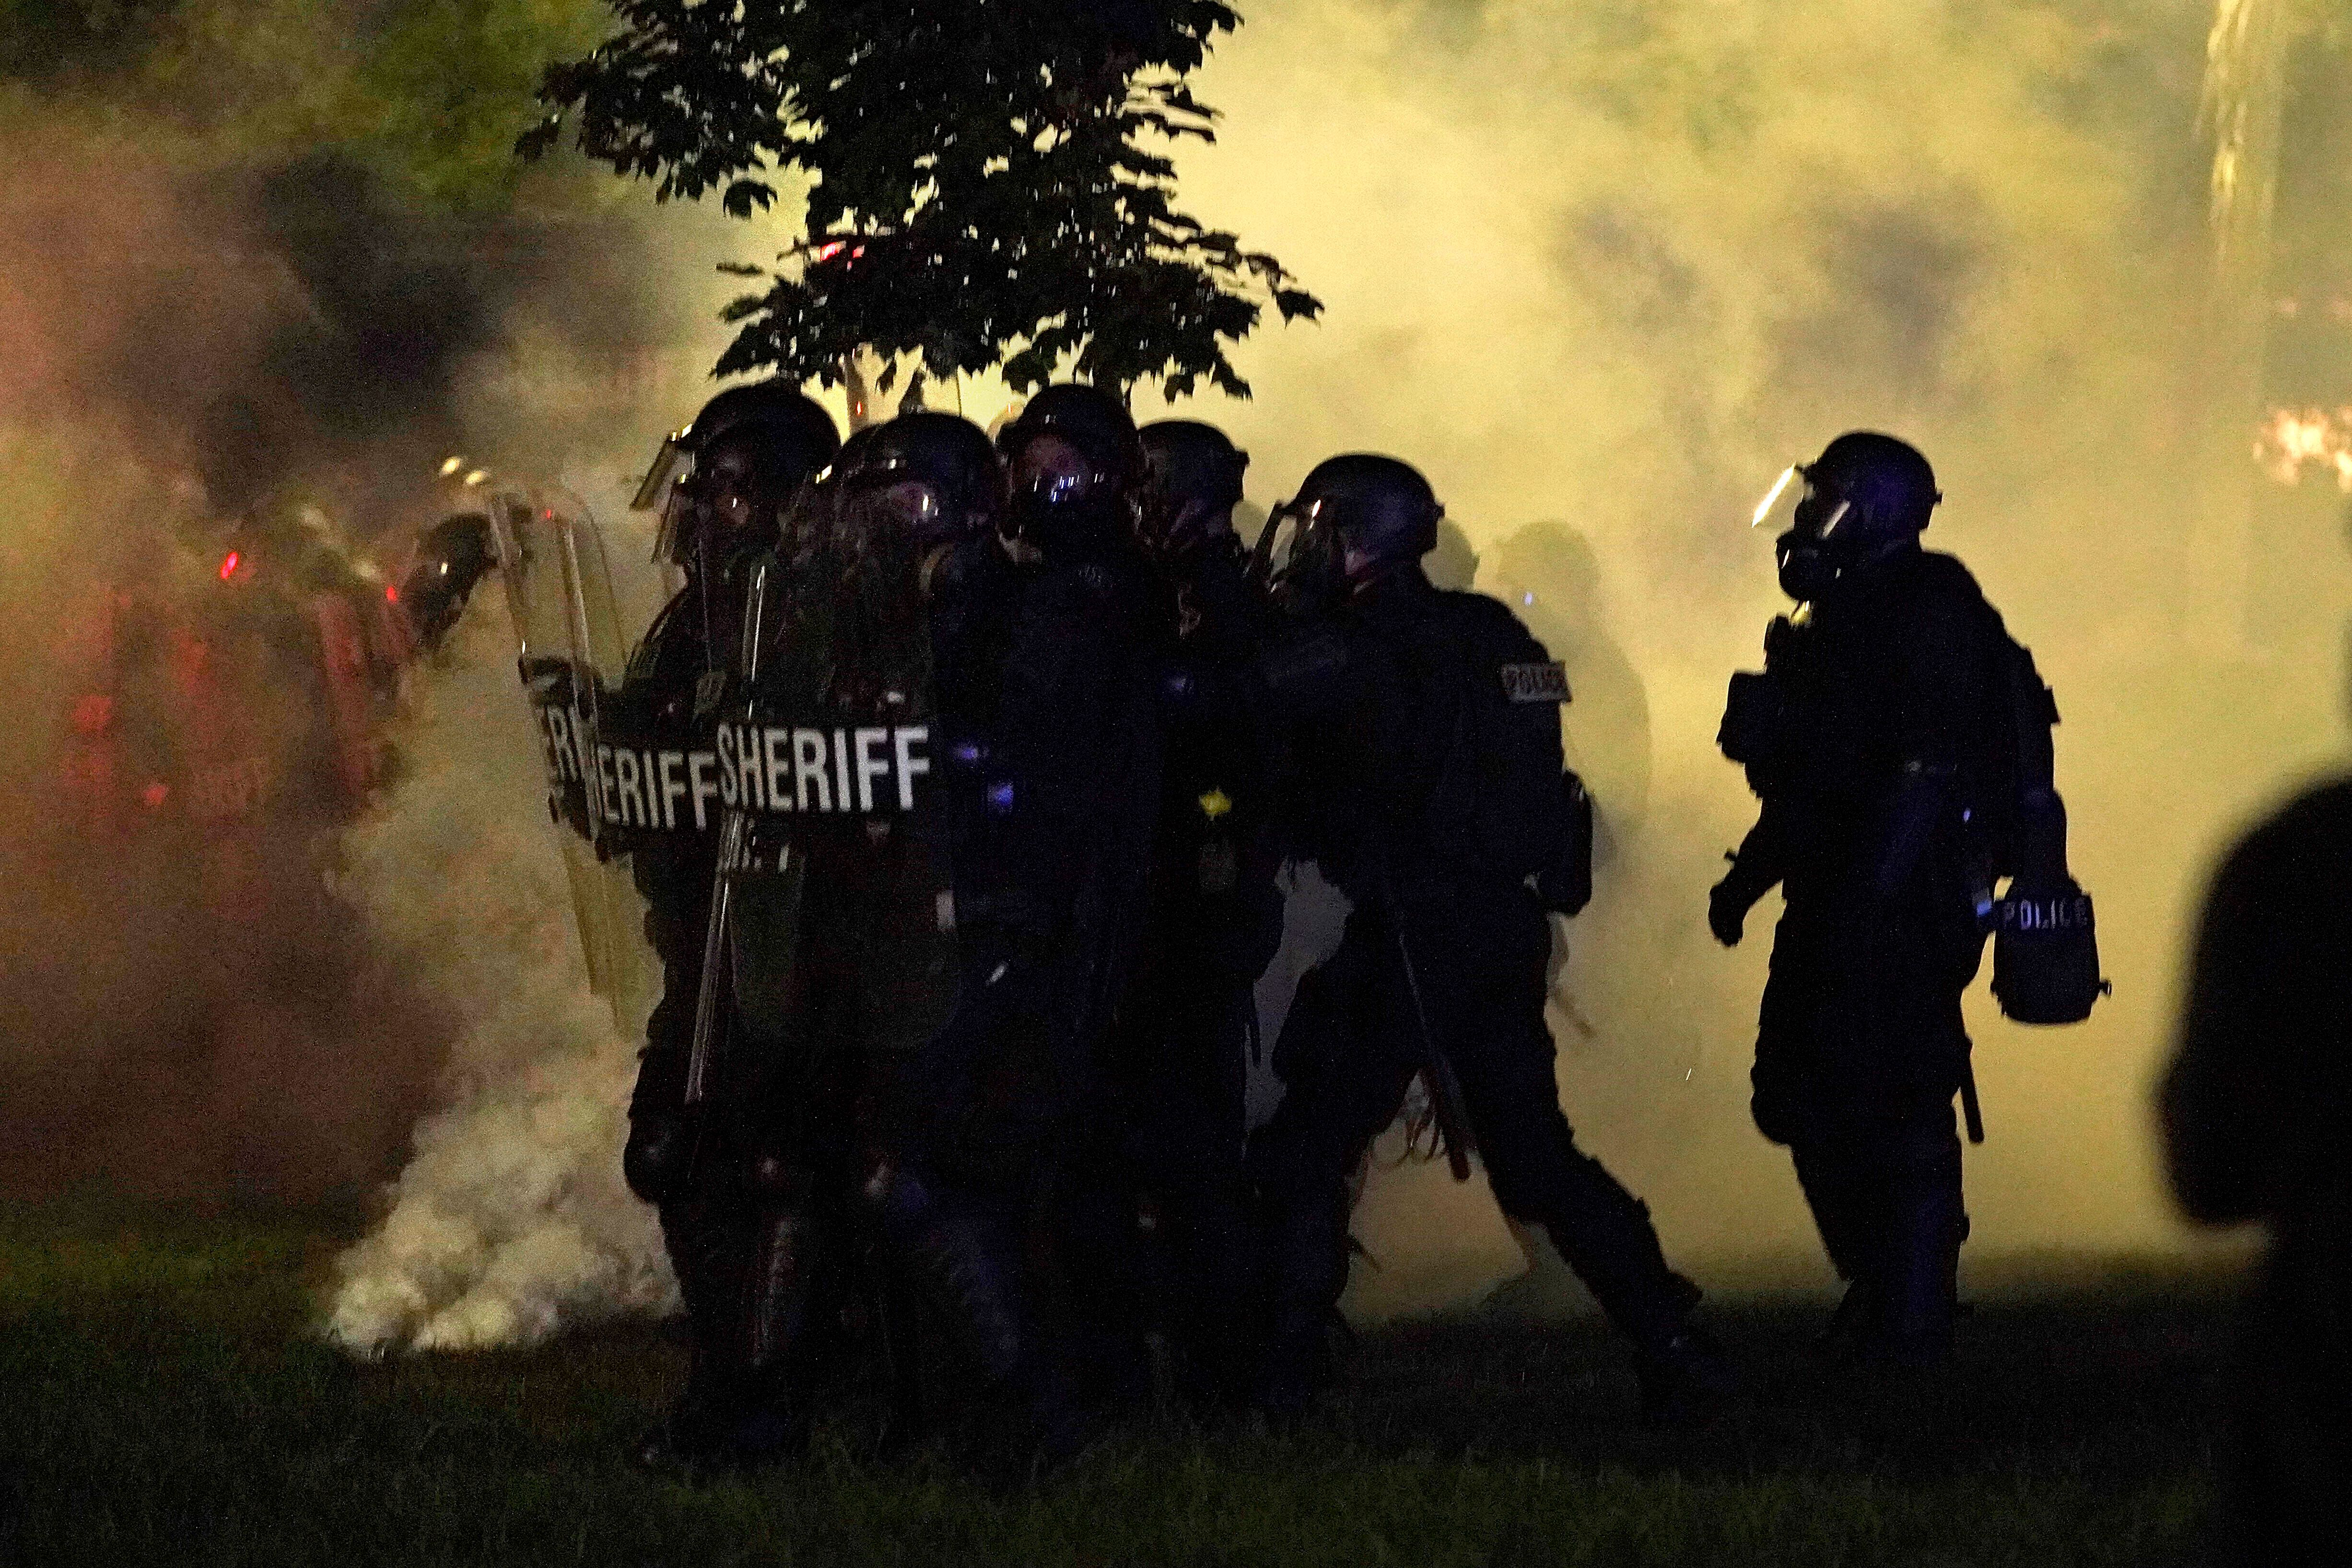 Police in riot gear clear a park during clashes with protesters outside the Kenosha County Courthouse late Tuesday.